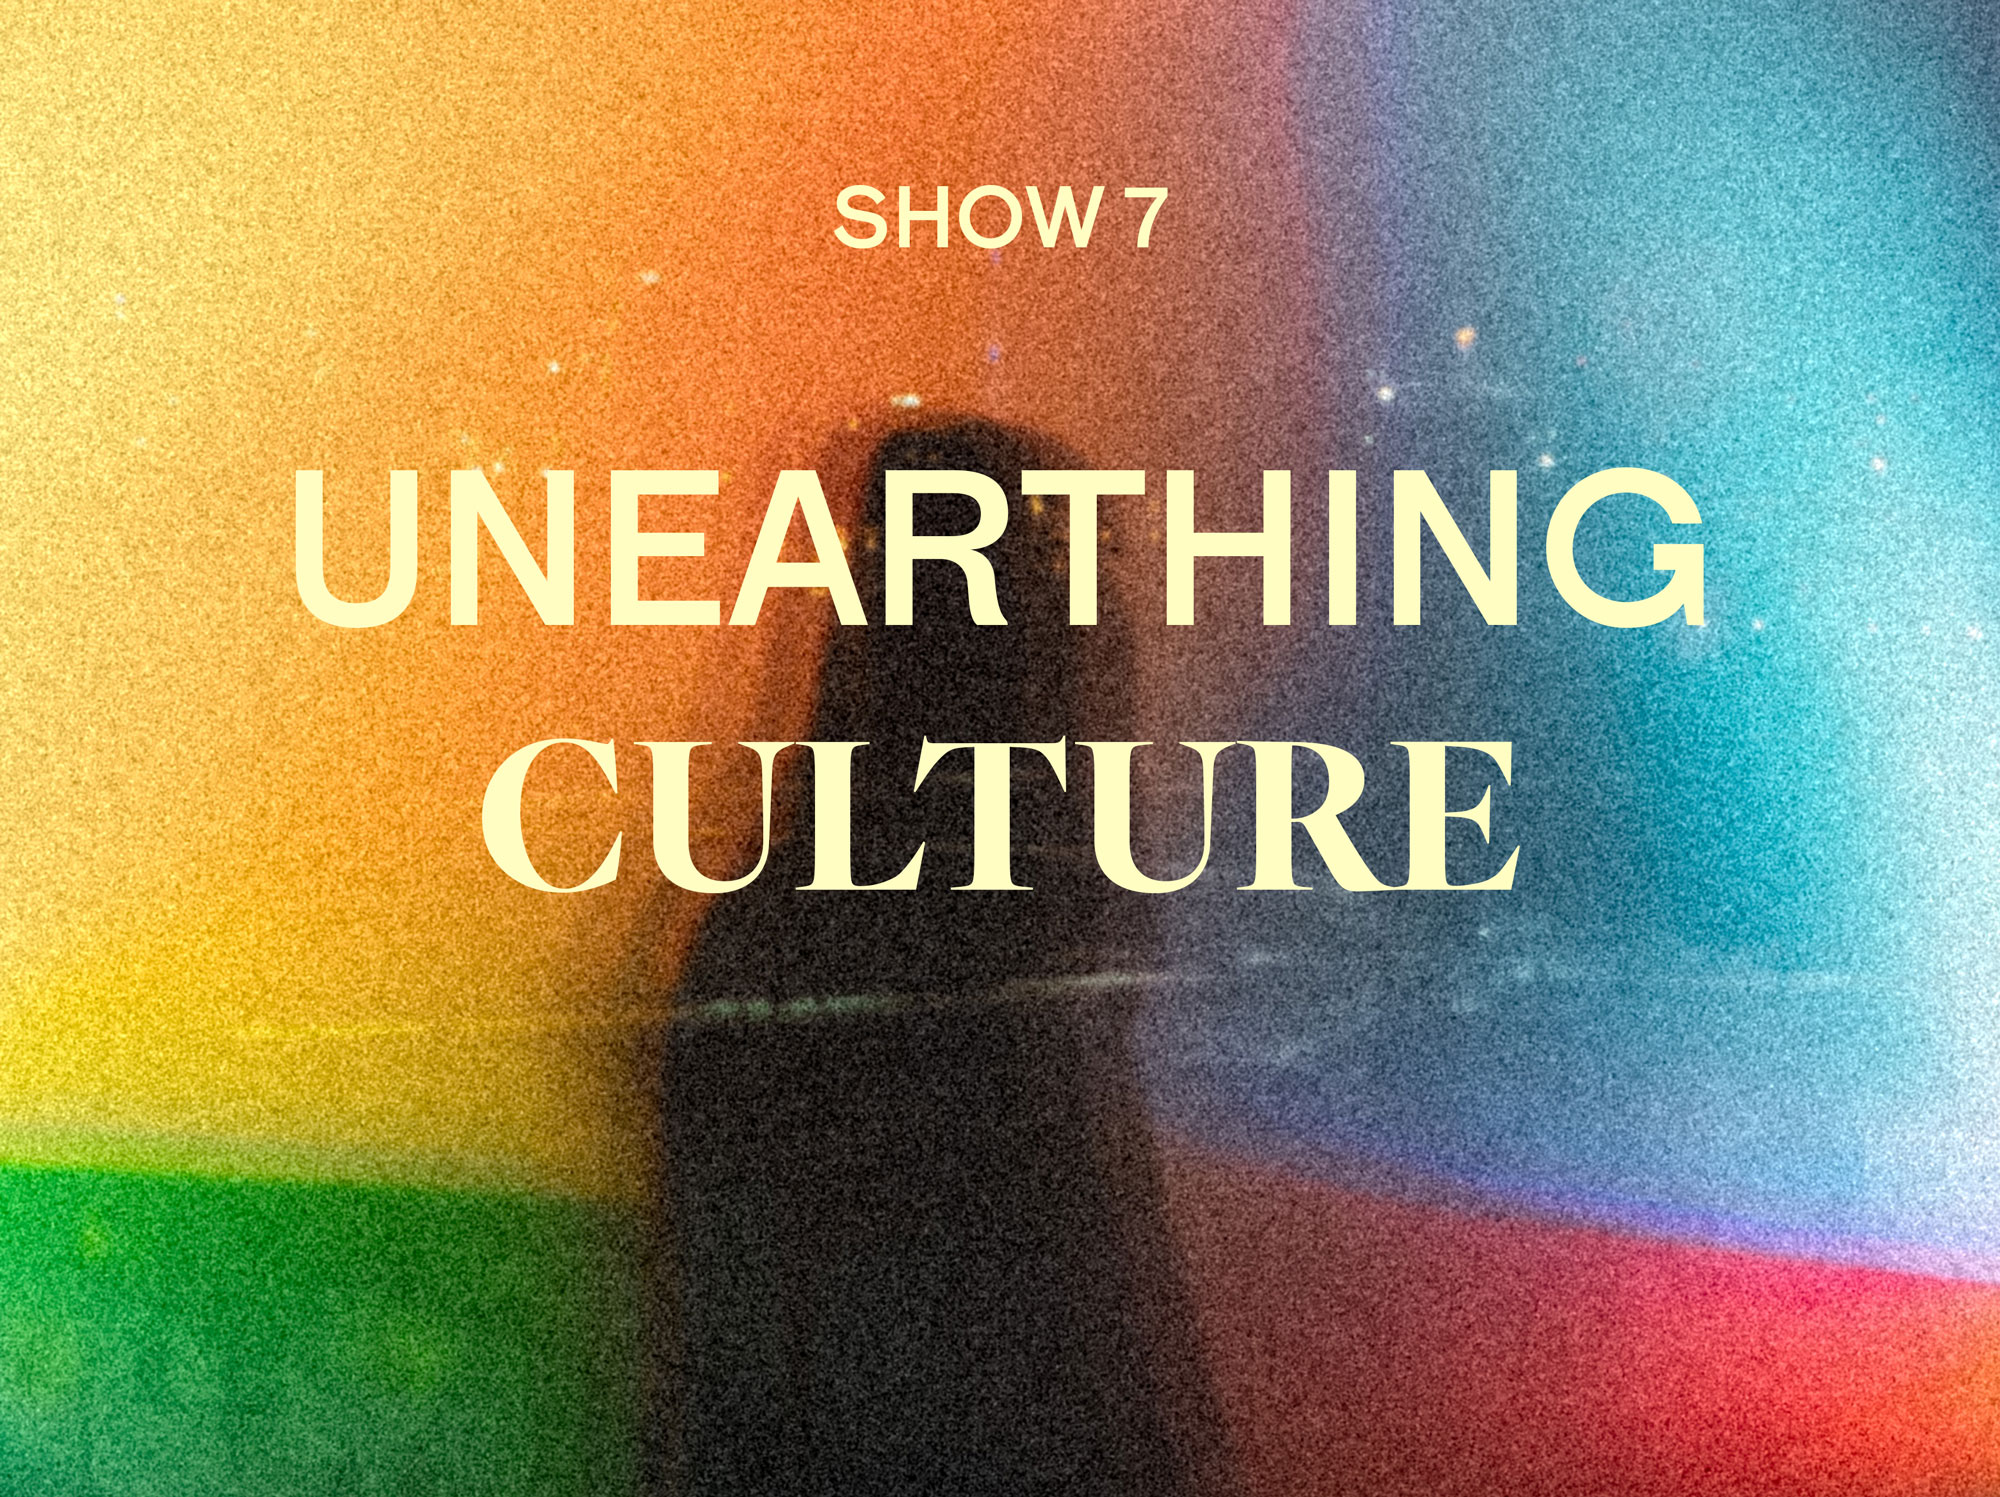 unearthing-culture-tile.jpg